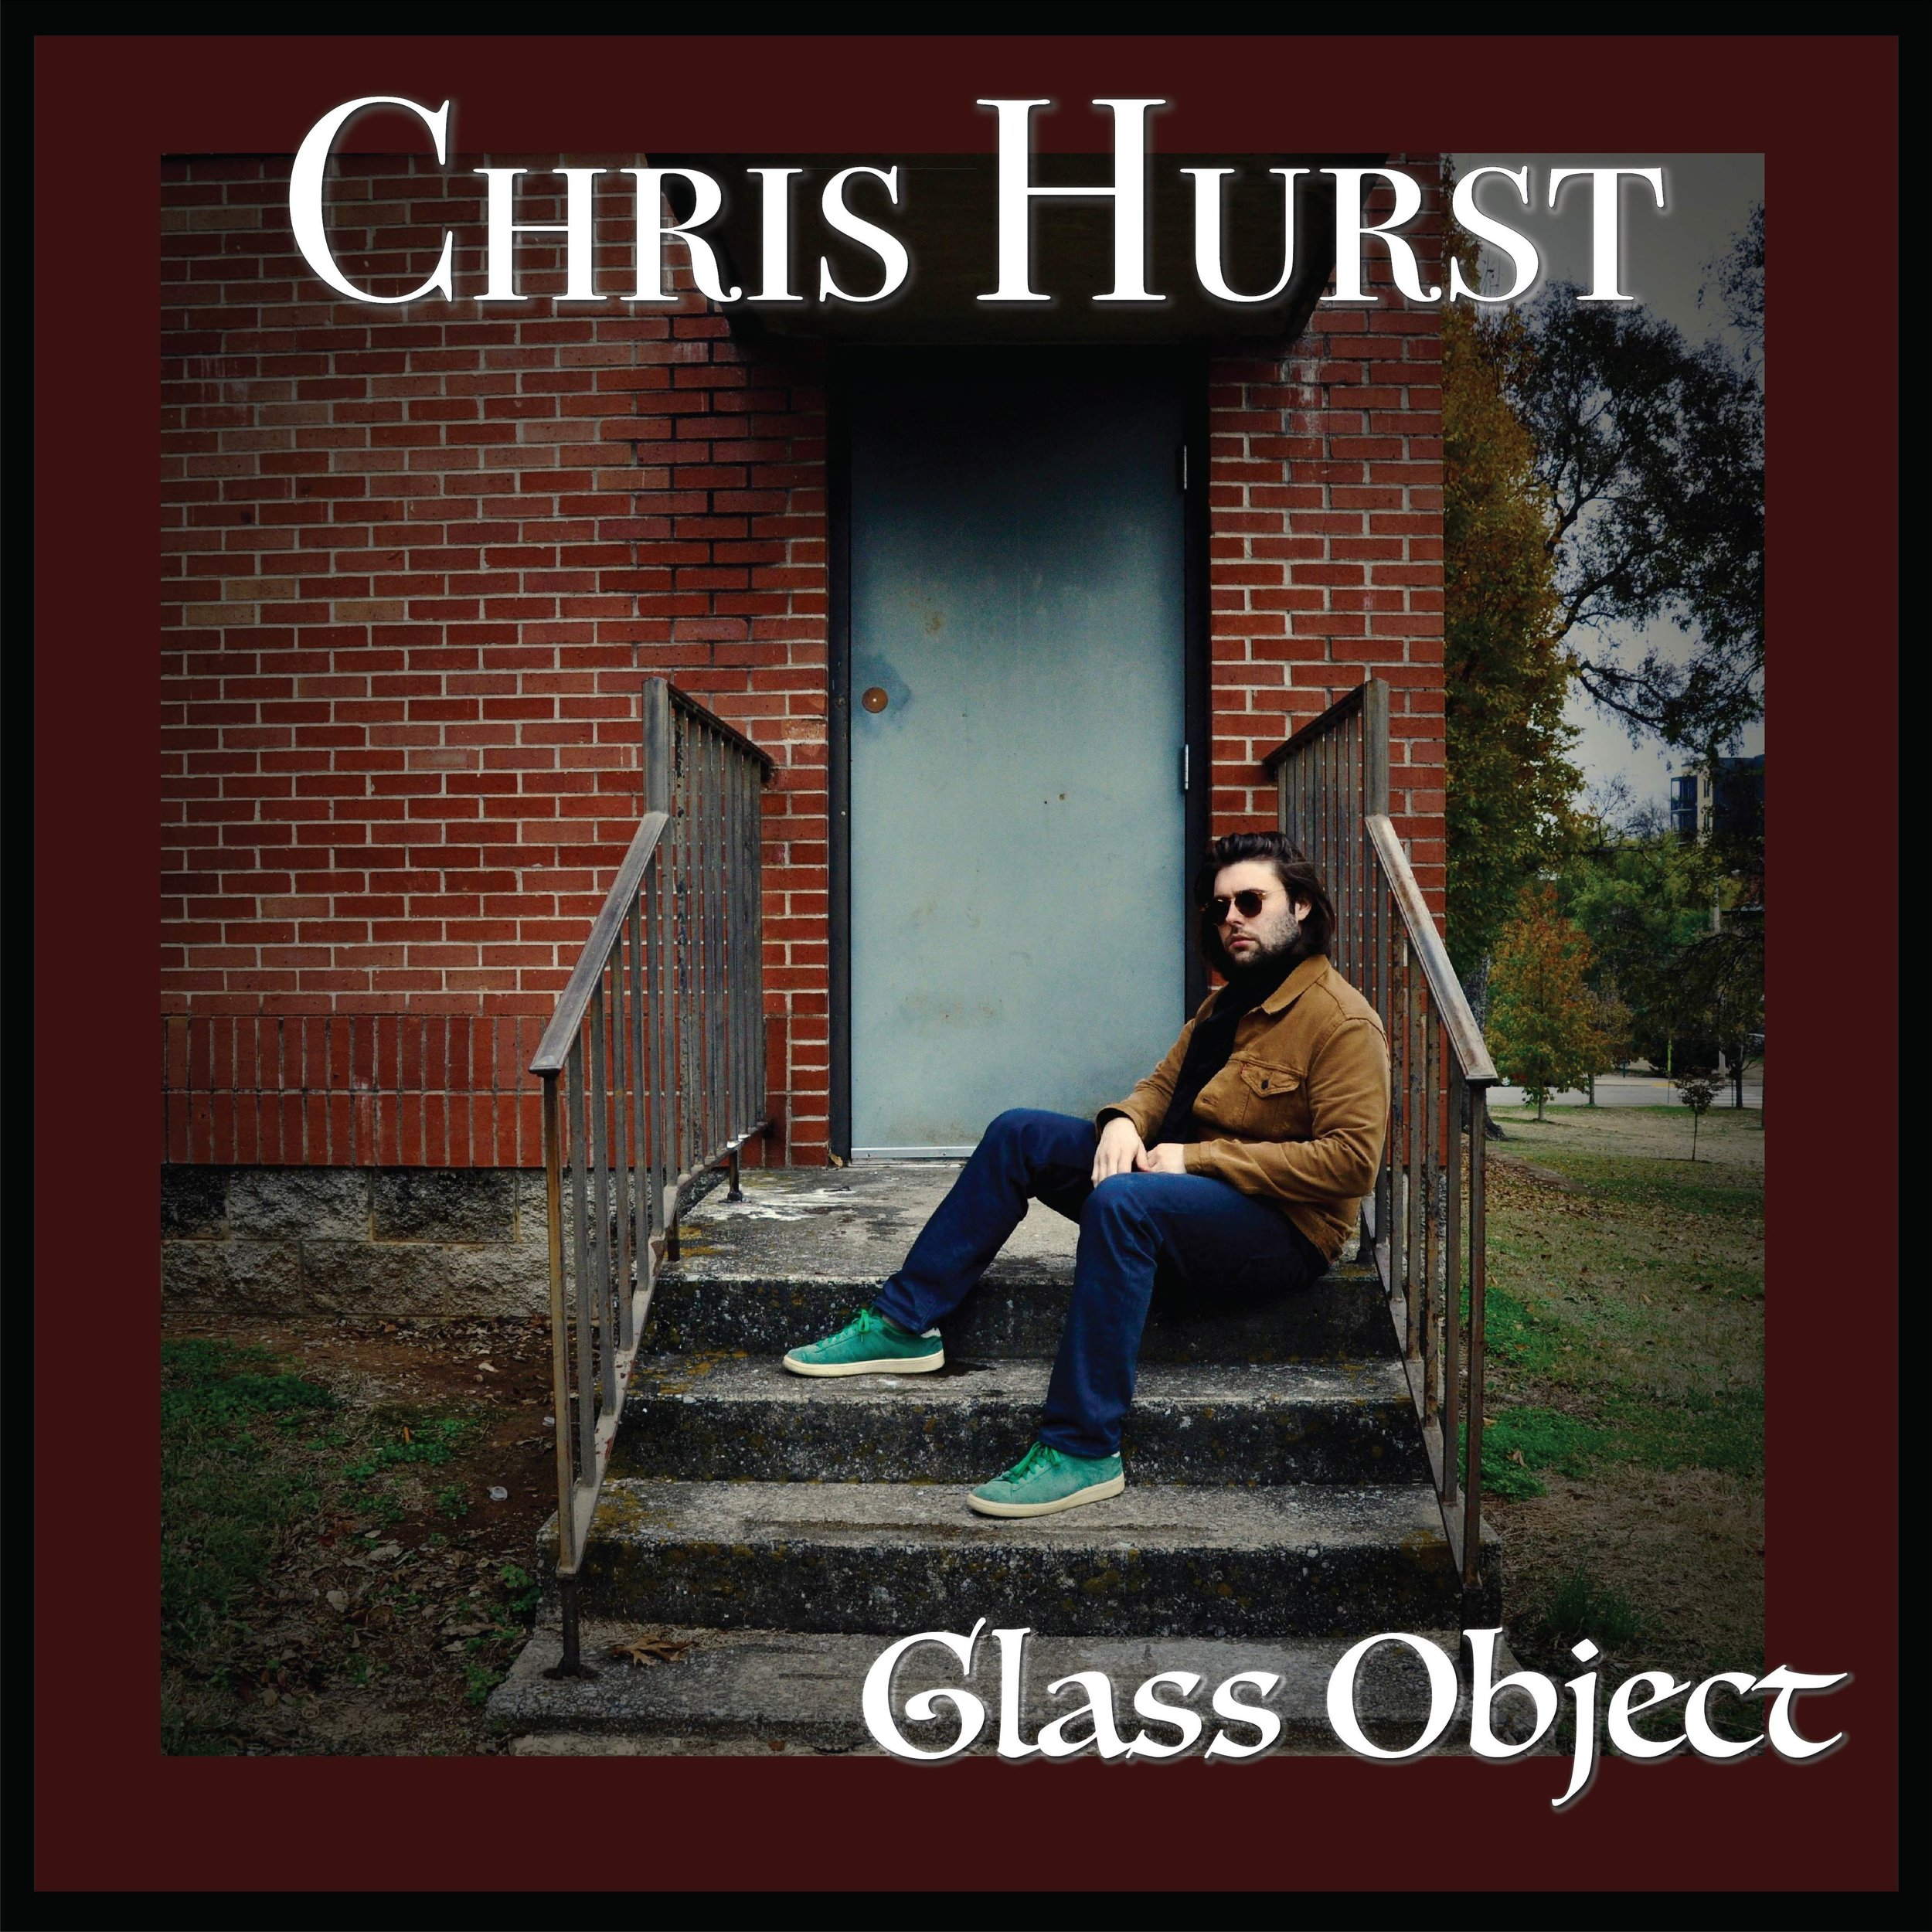 June 17th, 2019 - There will be a new single coming in anticipation of the new record Glass Object! The single will be on al l platforms August 2nd, 2019!